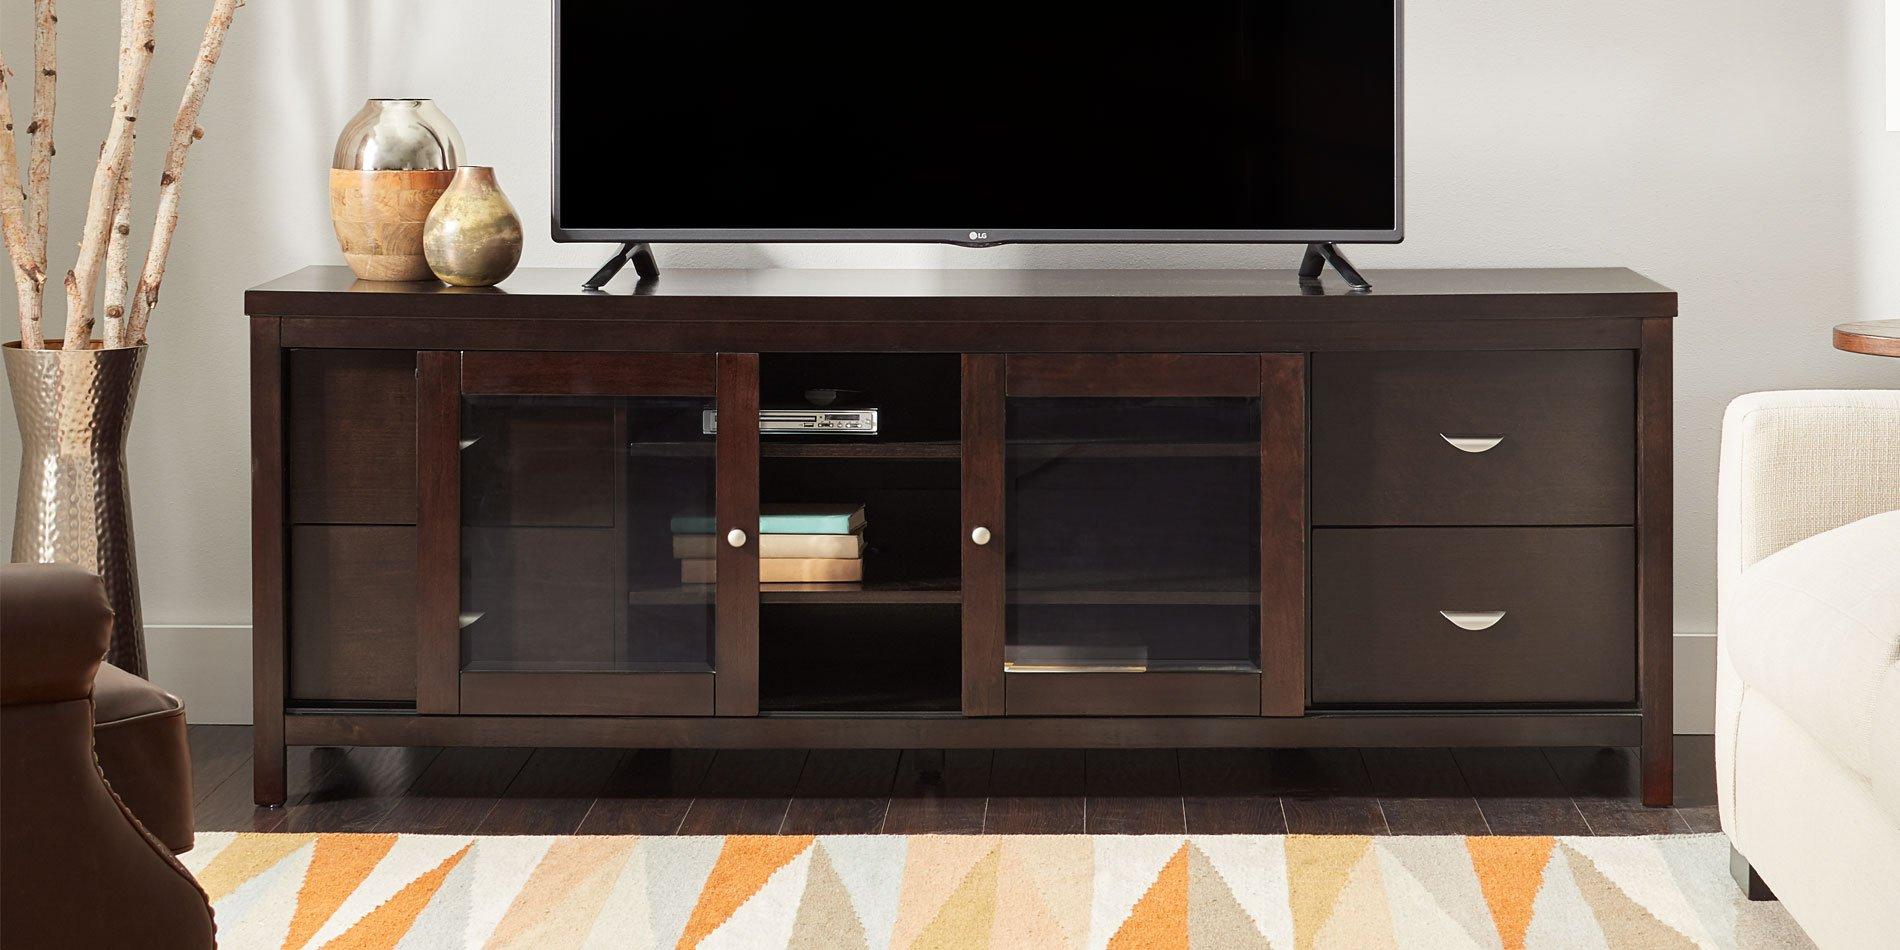 Buy Tv Stands & Entertainment Centers Online At Overstock | Our with regard to Canyon 74 Inch Tv Stands (Image 3 of 30)